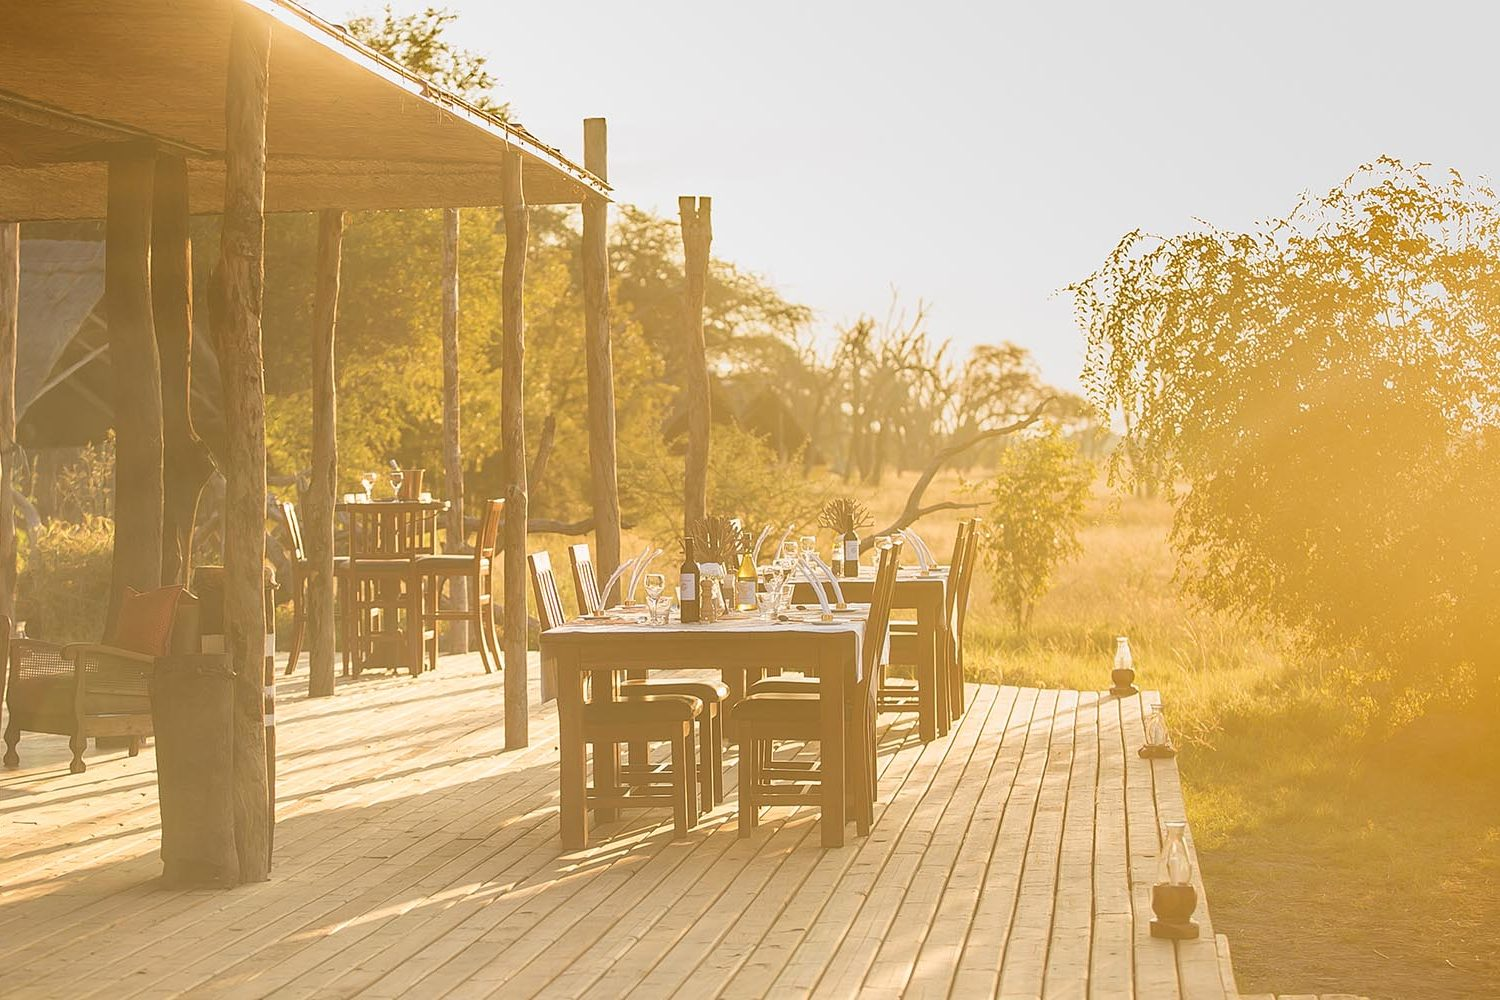 the hide hwange-national-park-lodges-zimbabwe-accommodation-deck